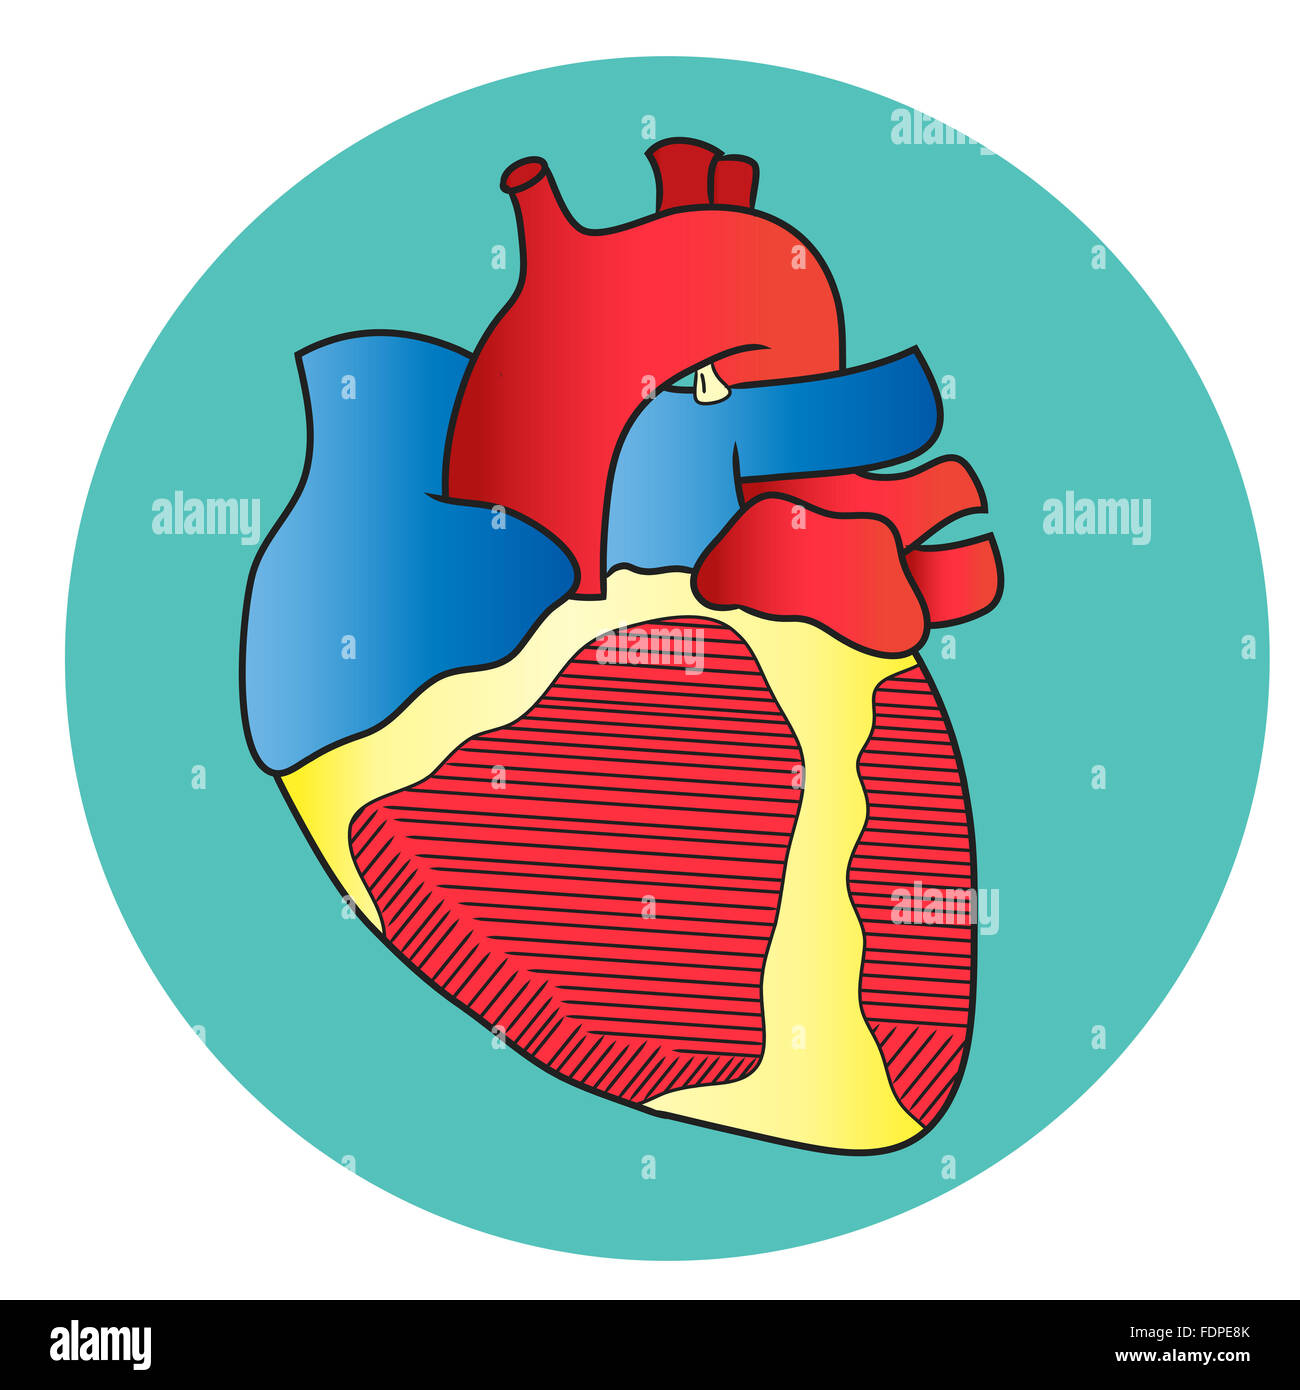 Heart Anterior View Stockfotos & Heart Anterior View Bilder - Alamy